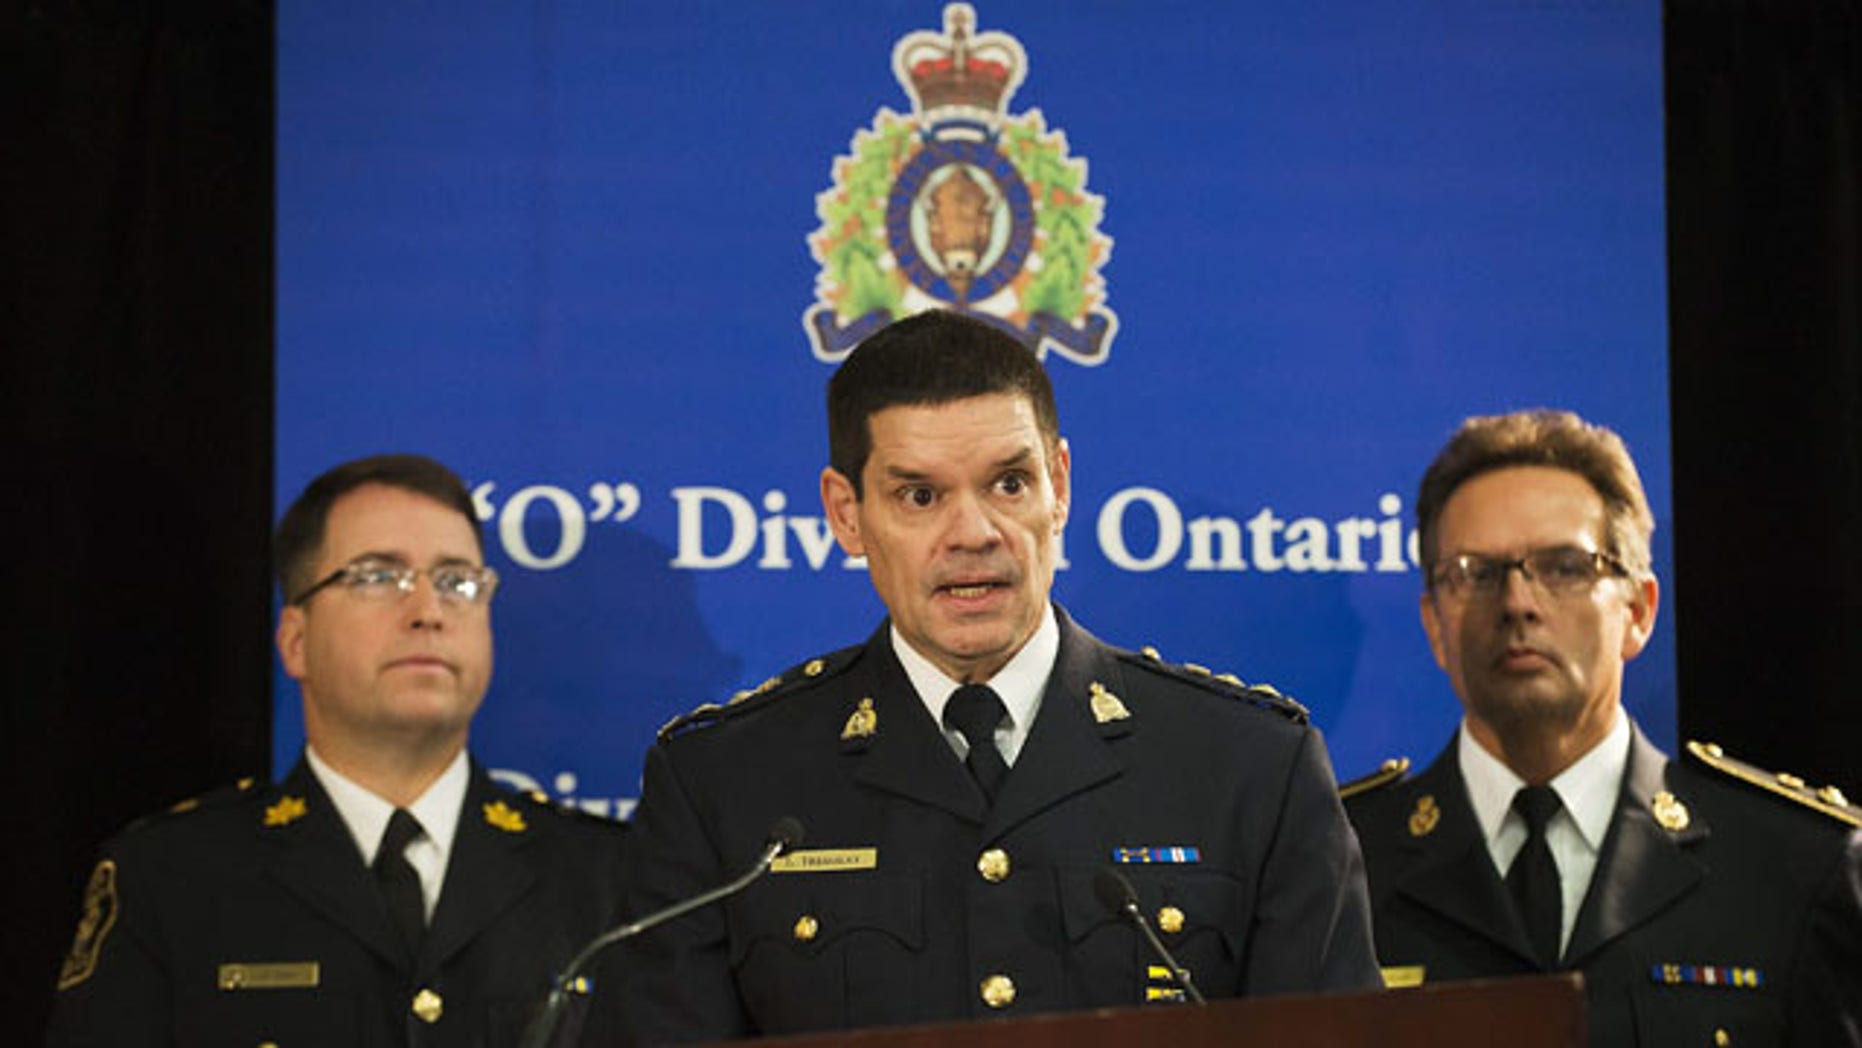 December 1, 2013: Chief Superintendent Larry Tremblay, Director General of the RCMP Federal Policing Criminal Operations of the RCMP, speaks during a news conference in Toronto. Police said that a Canadian man has been arrested for allegedly trying to sell classified information to the Chinese government about Canada's warship building procurement strategy. (AP Photo/The Canadian Press, Aaron Vincent Elkaim)